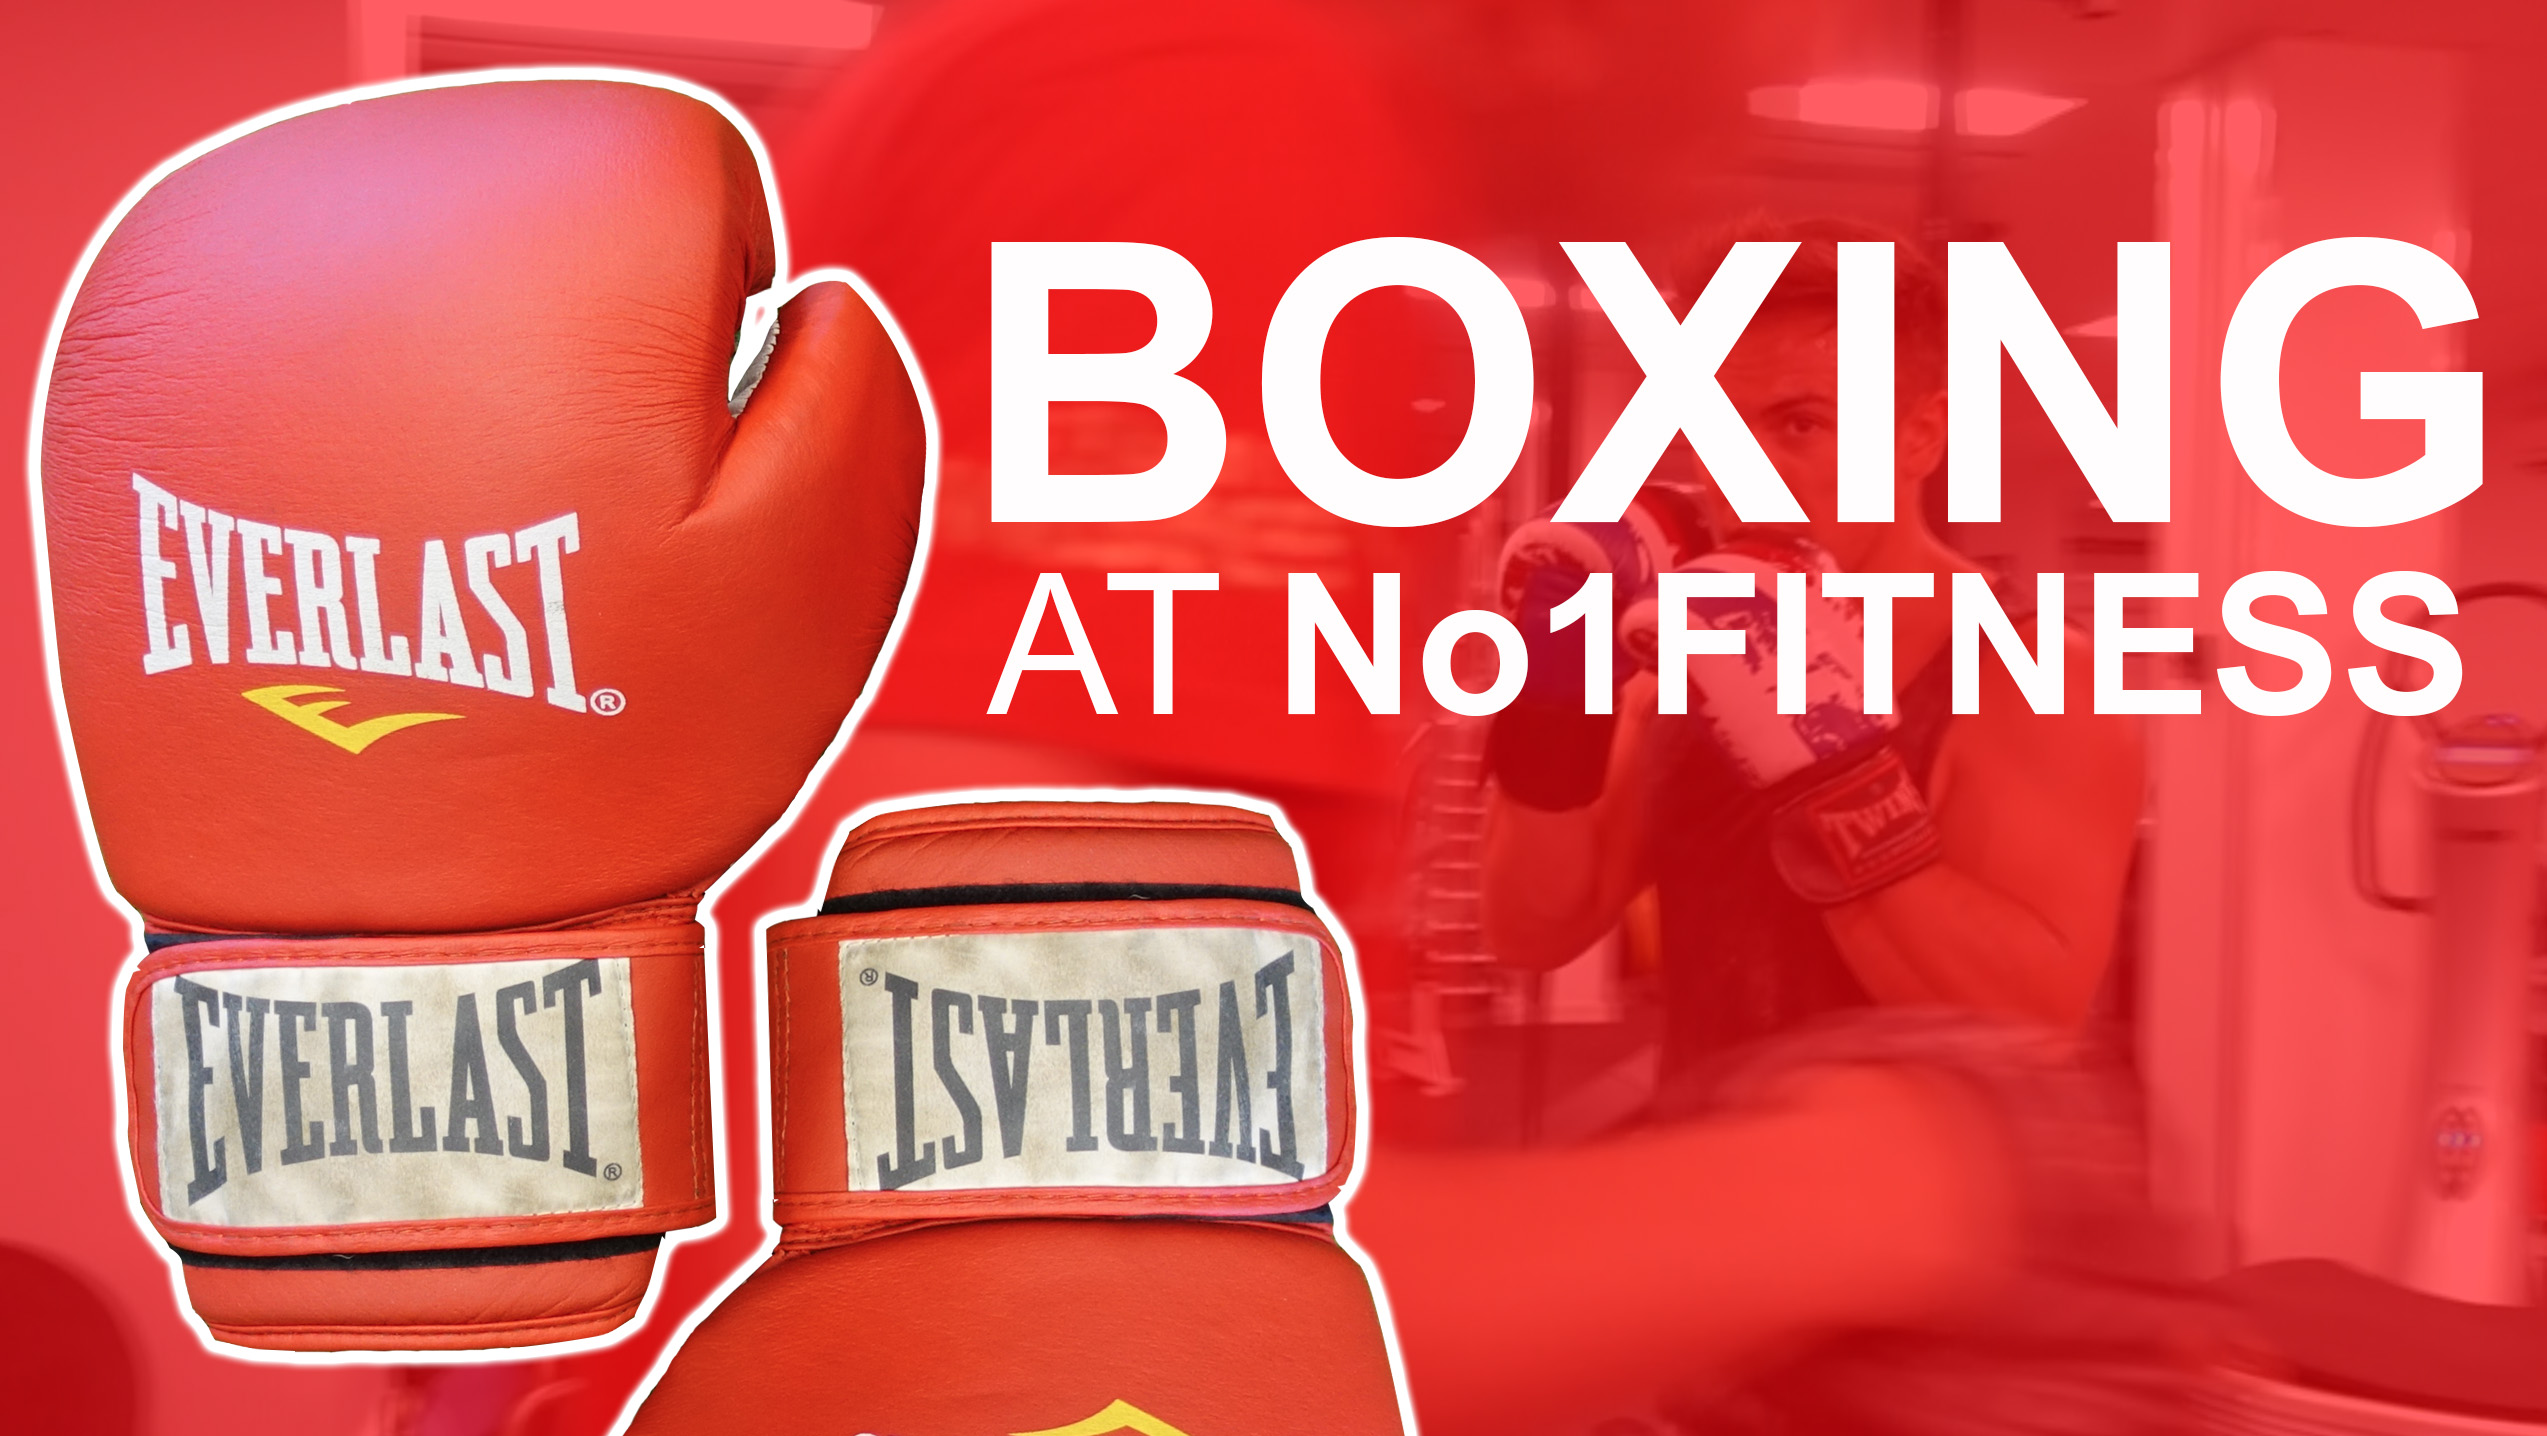 Boxing Will Help You Burn An Insane Amount Of Calories | No1 Fitness